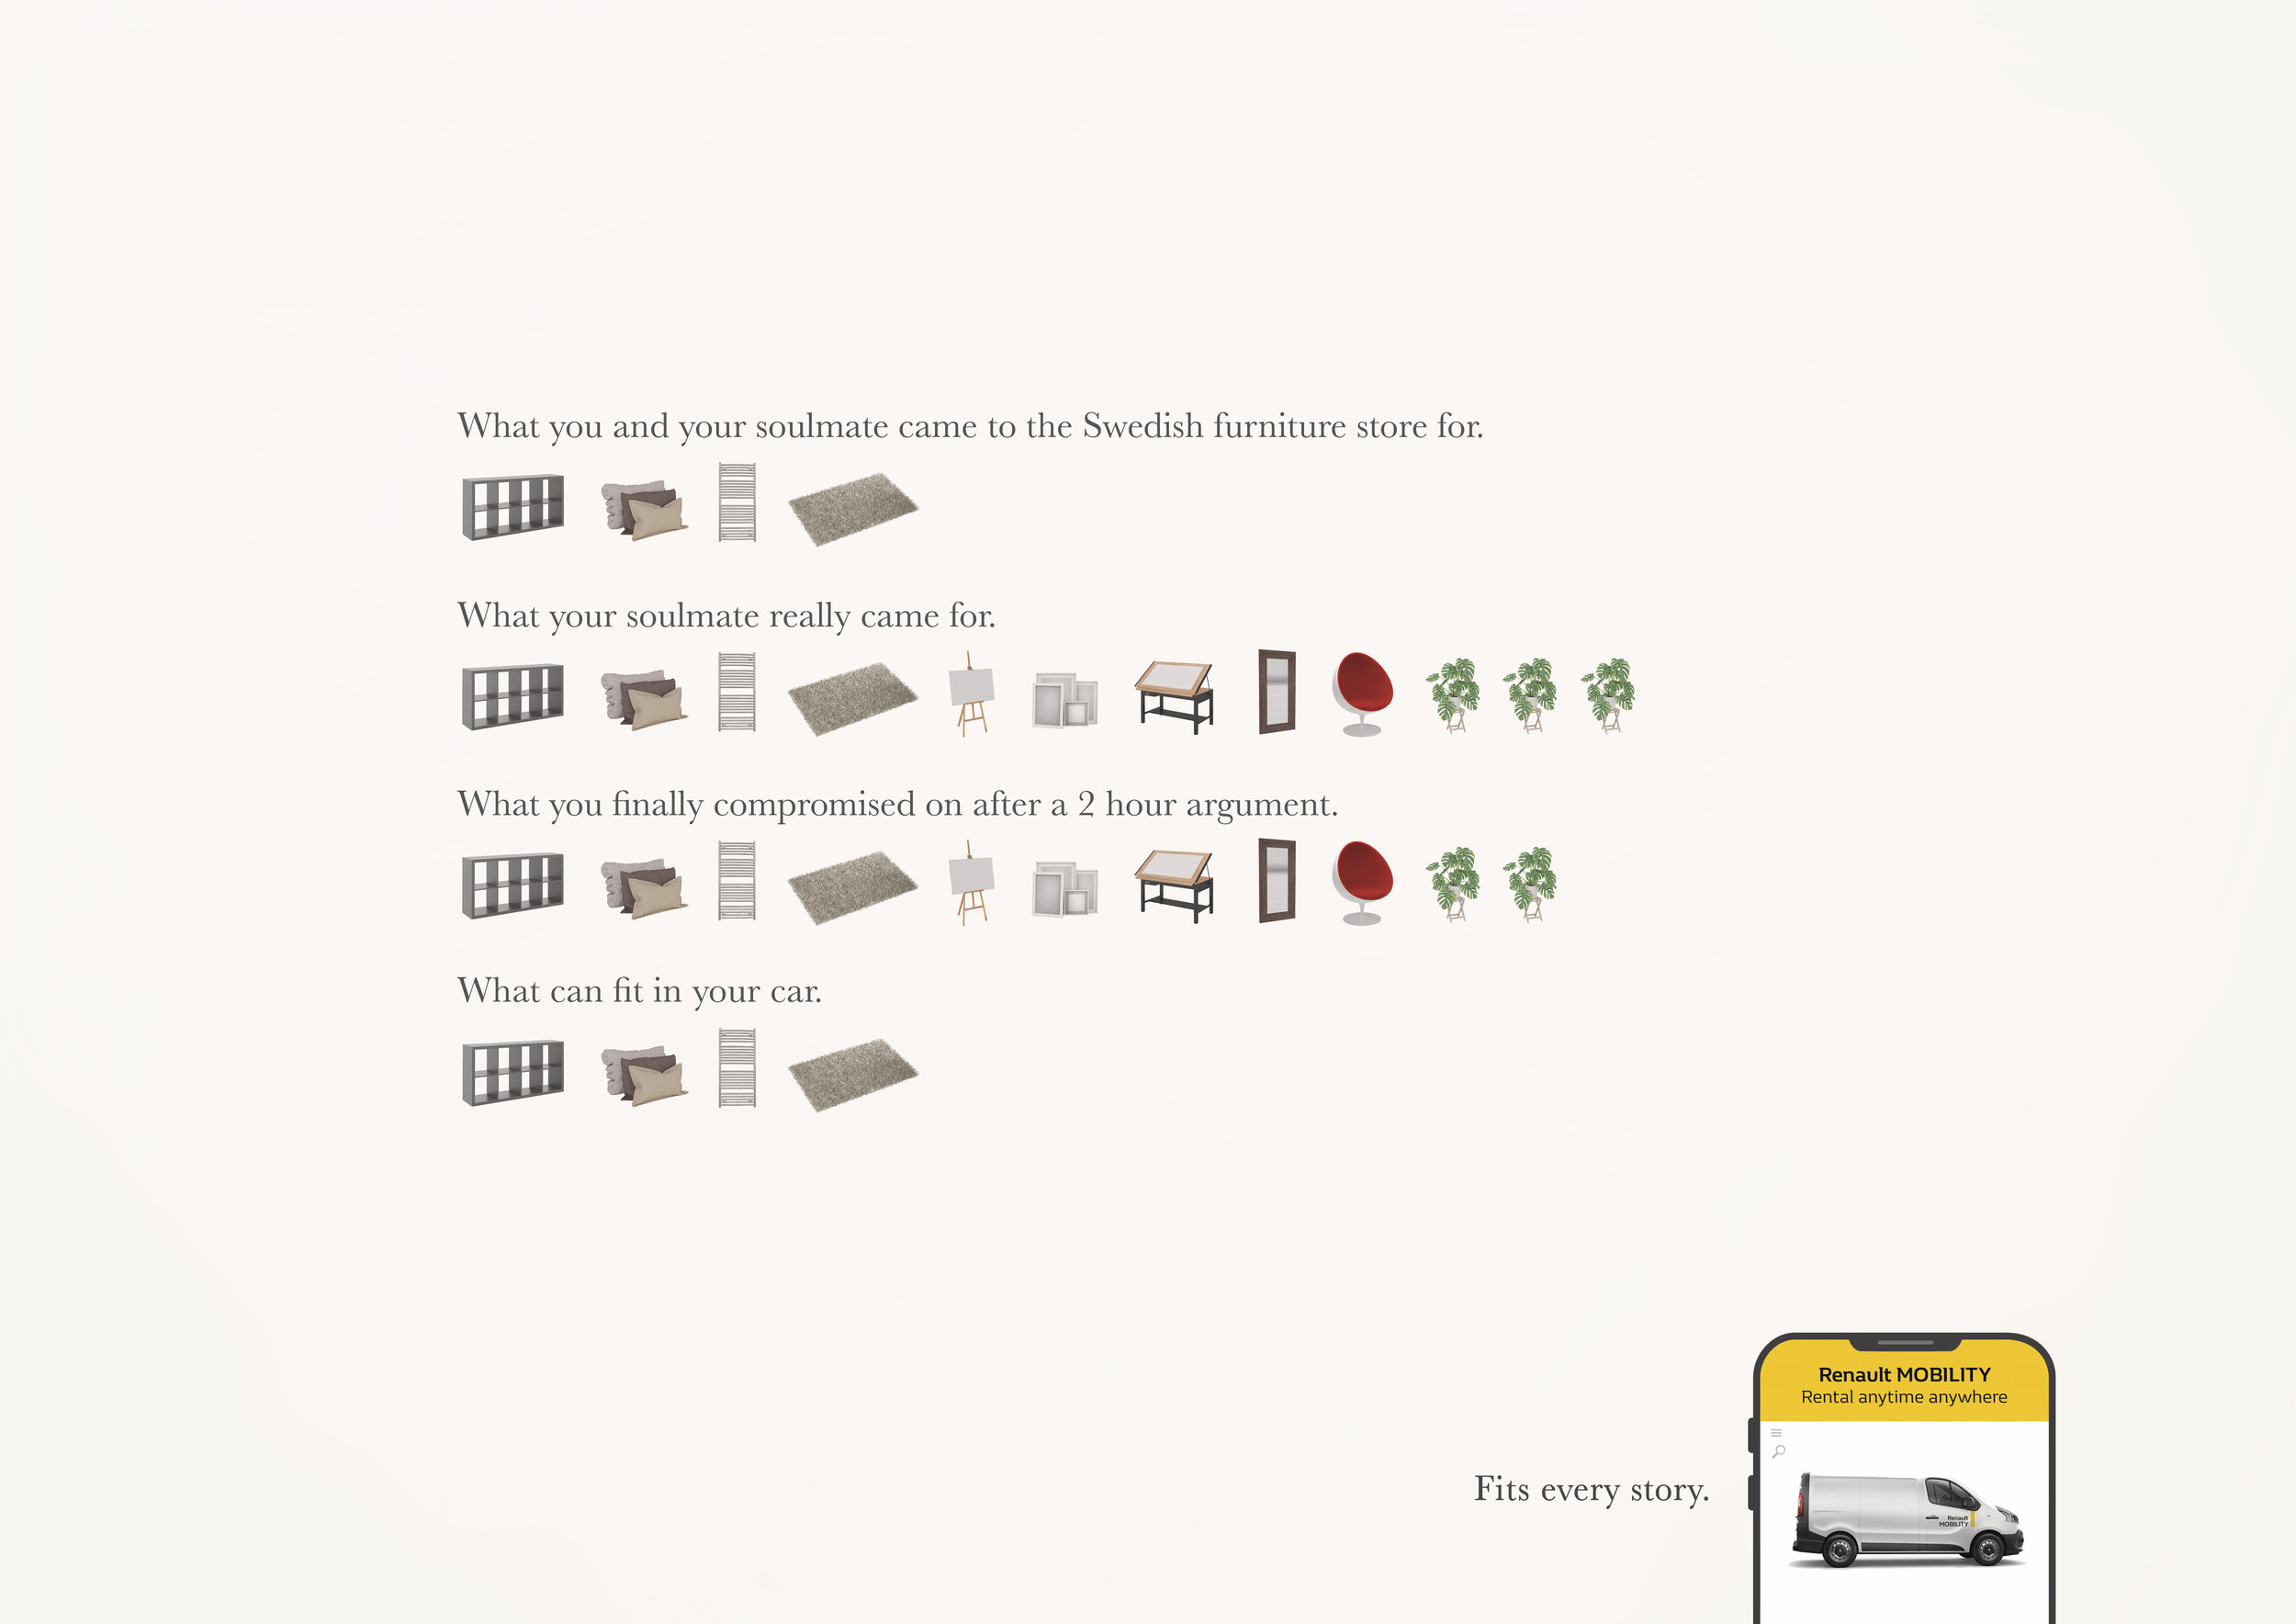 RENAULT MOBILITY - FITS EVERY STORY - IKEA.jpg